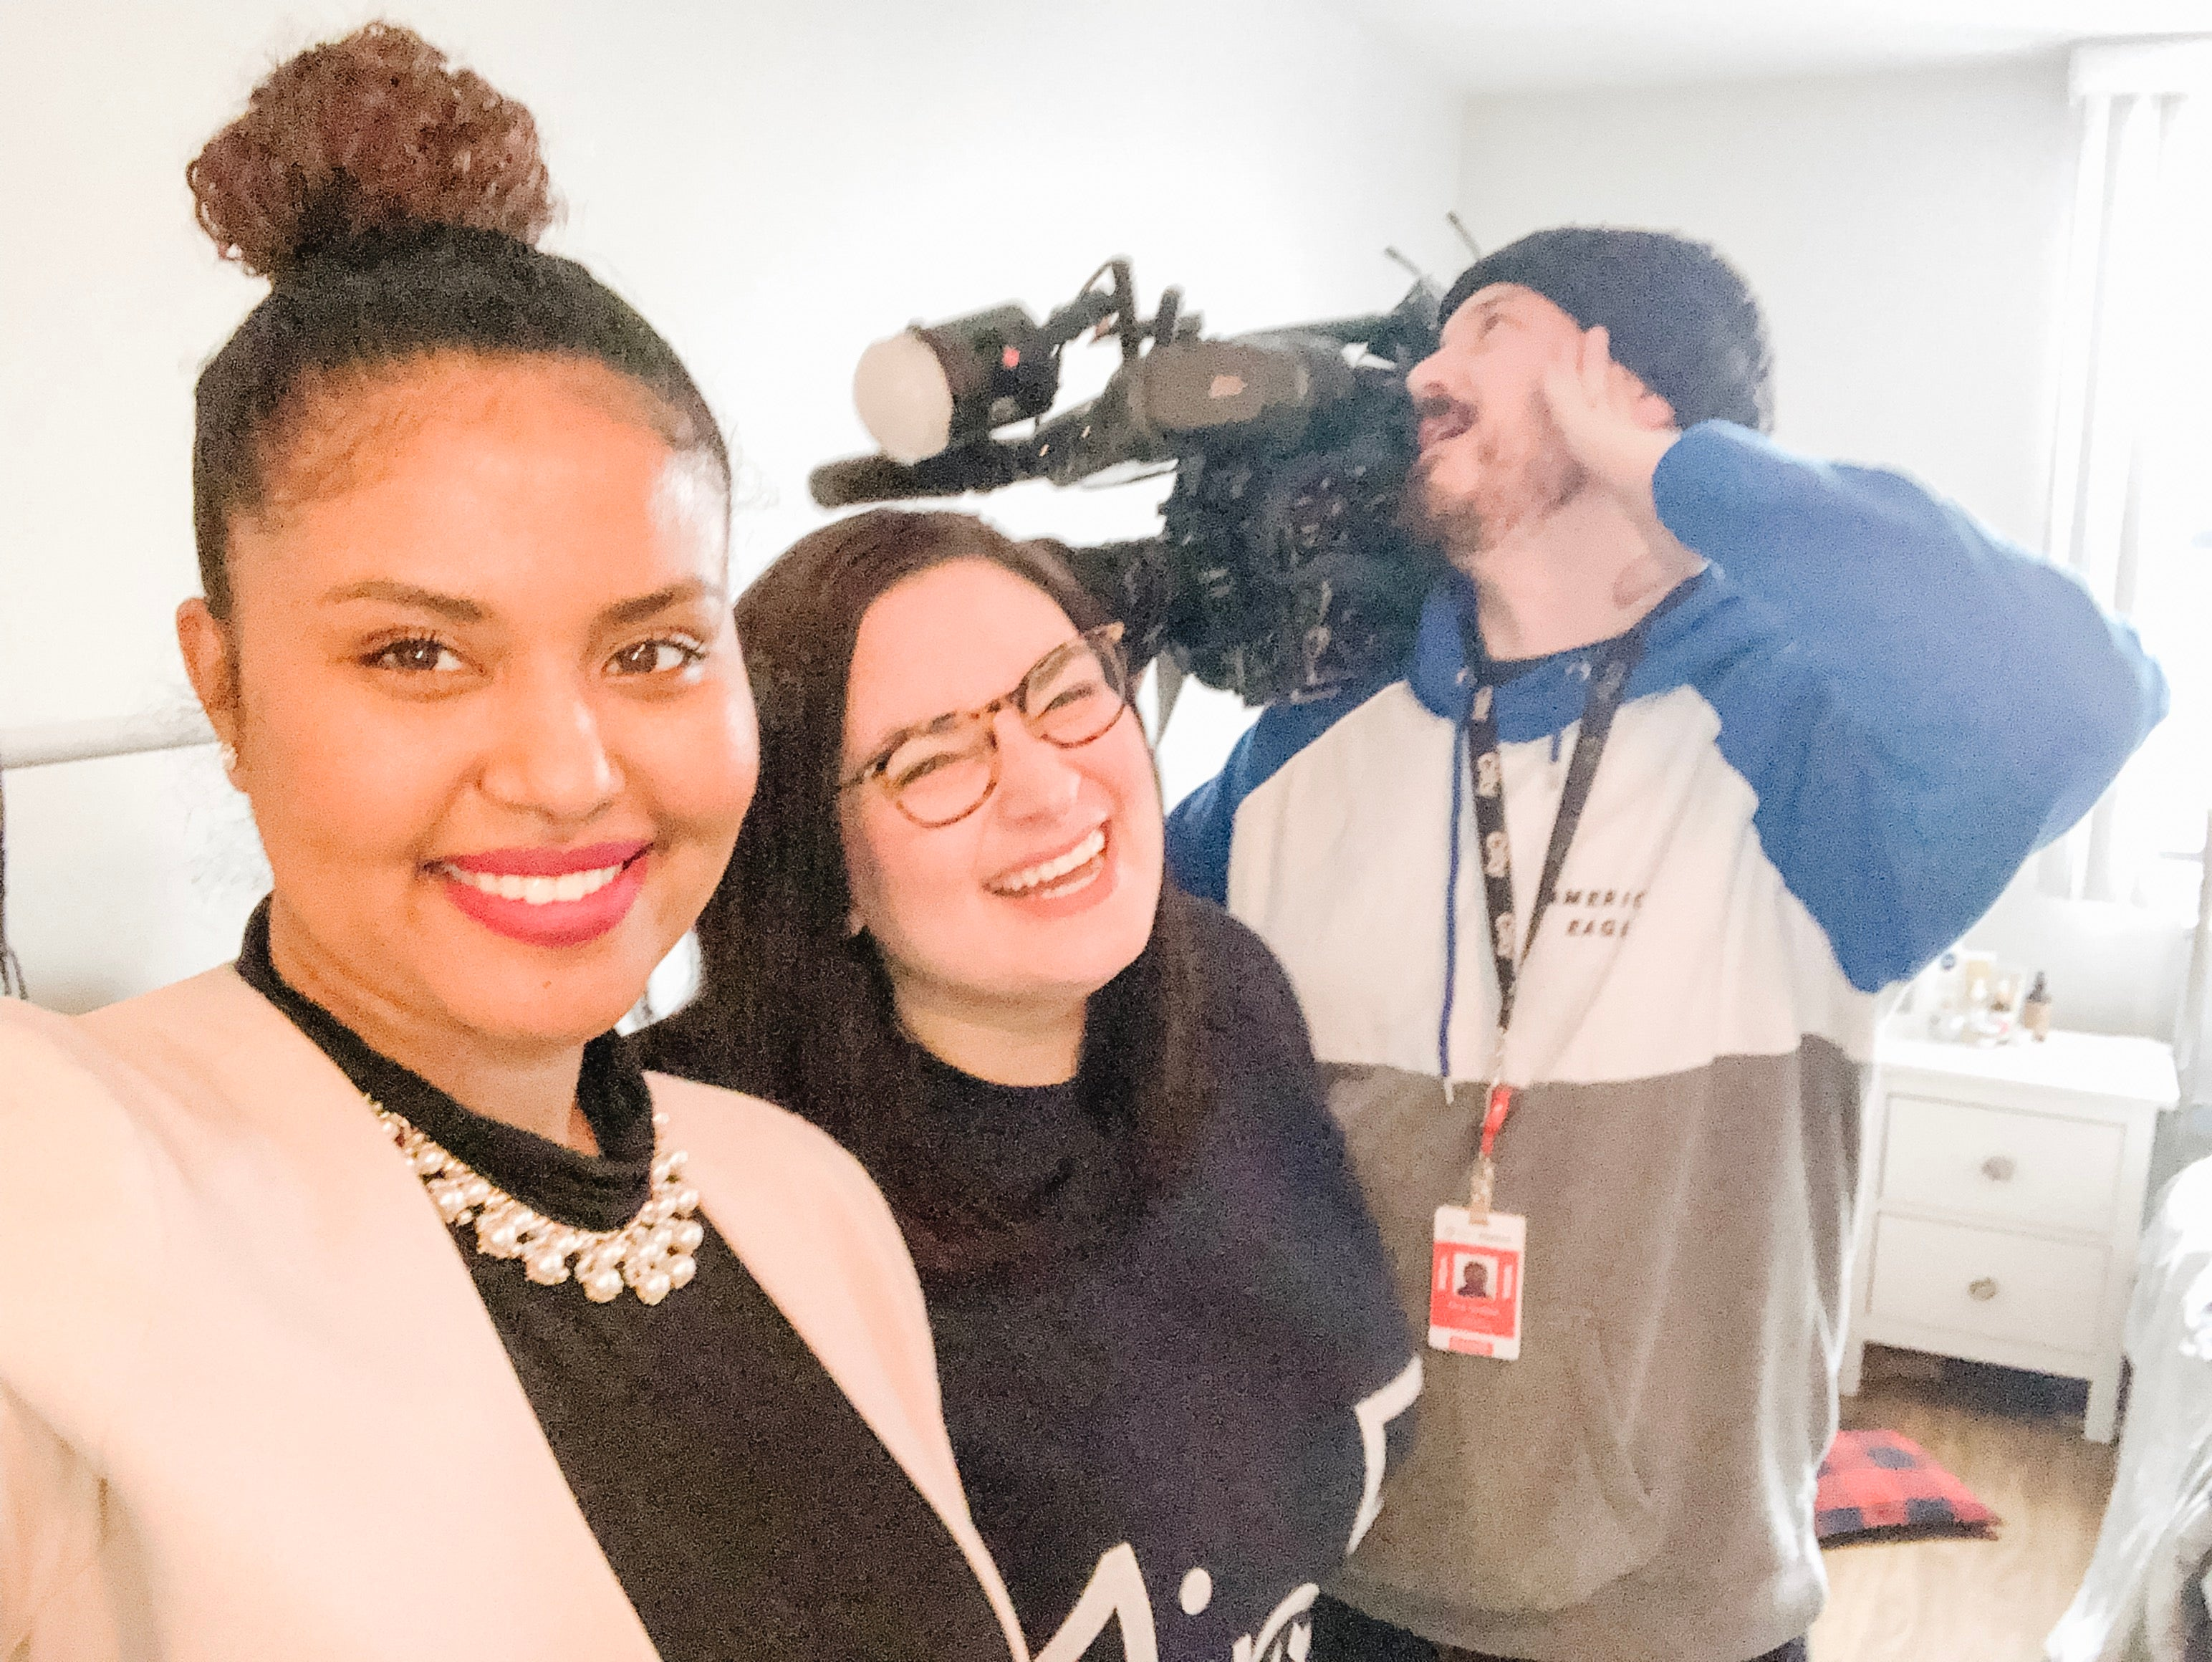 CityNew's Faiza Amin with One in Five CEO Megan te Boekhorst and CityNews camera man